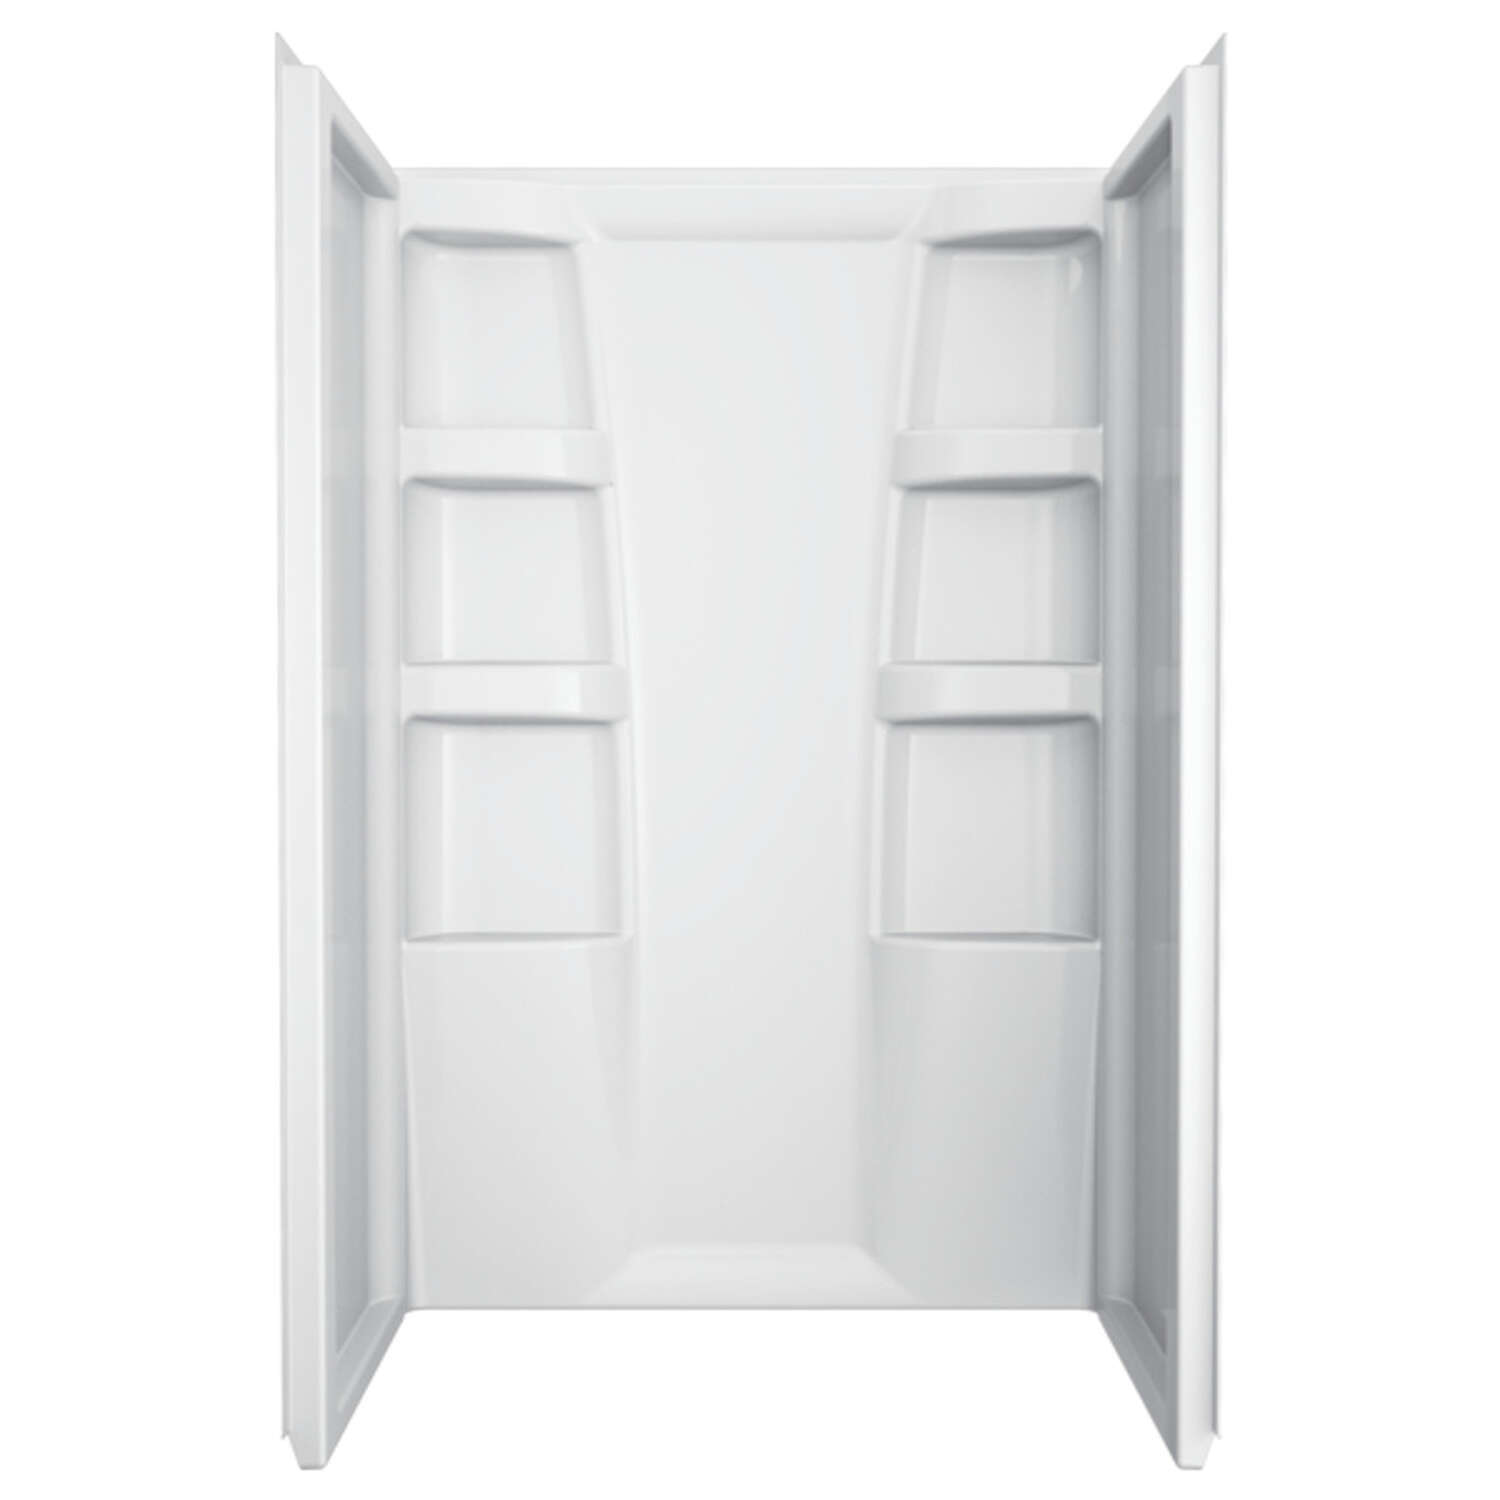 Delta  Hycroft  73.5 inch  H x 34 inch  W x 48 inch  L White  Shower Surround